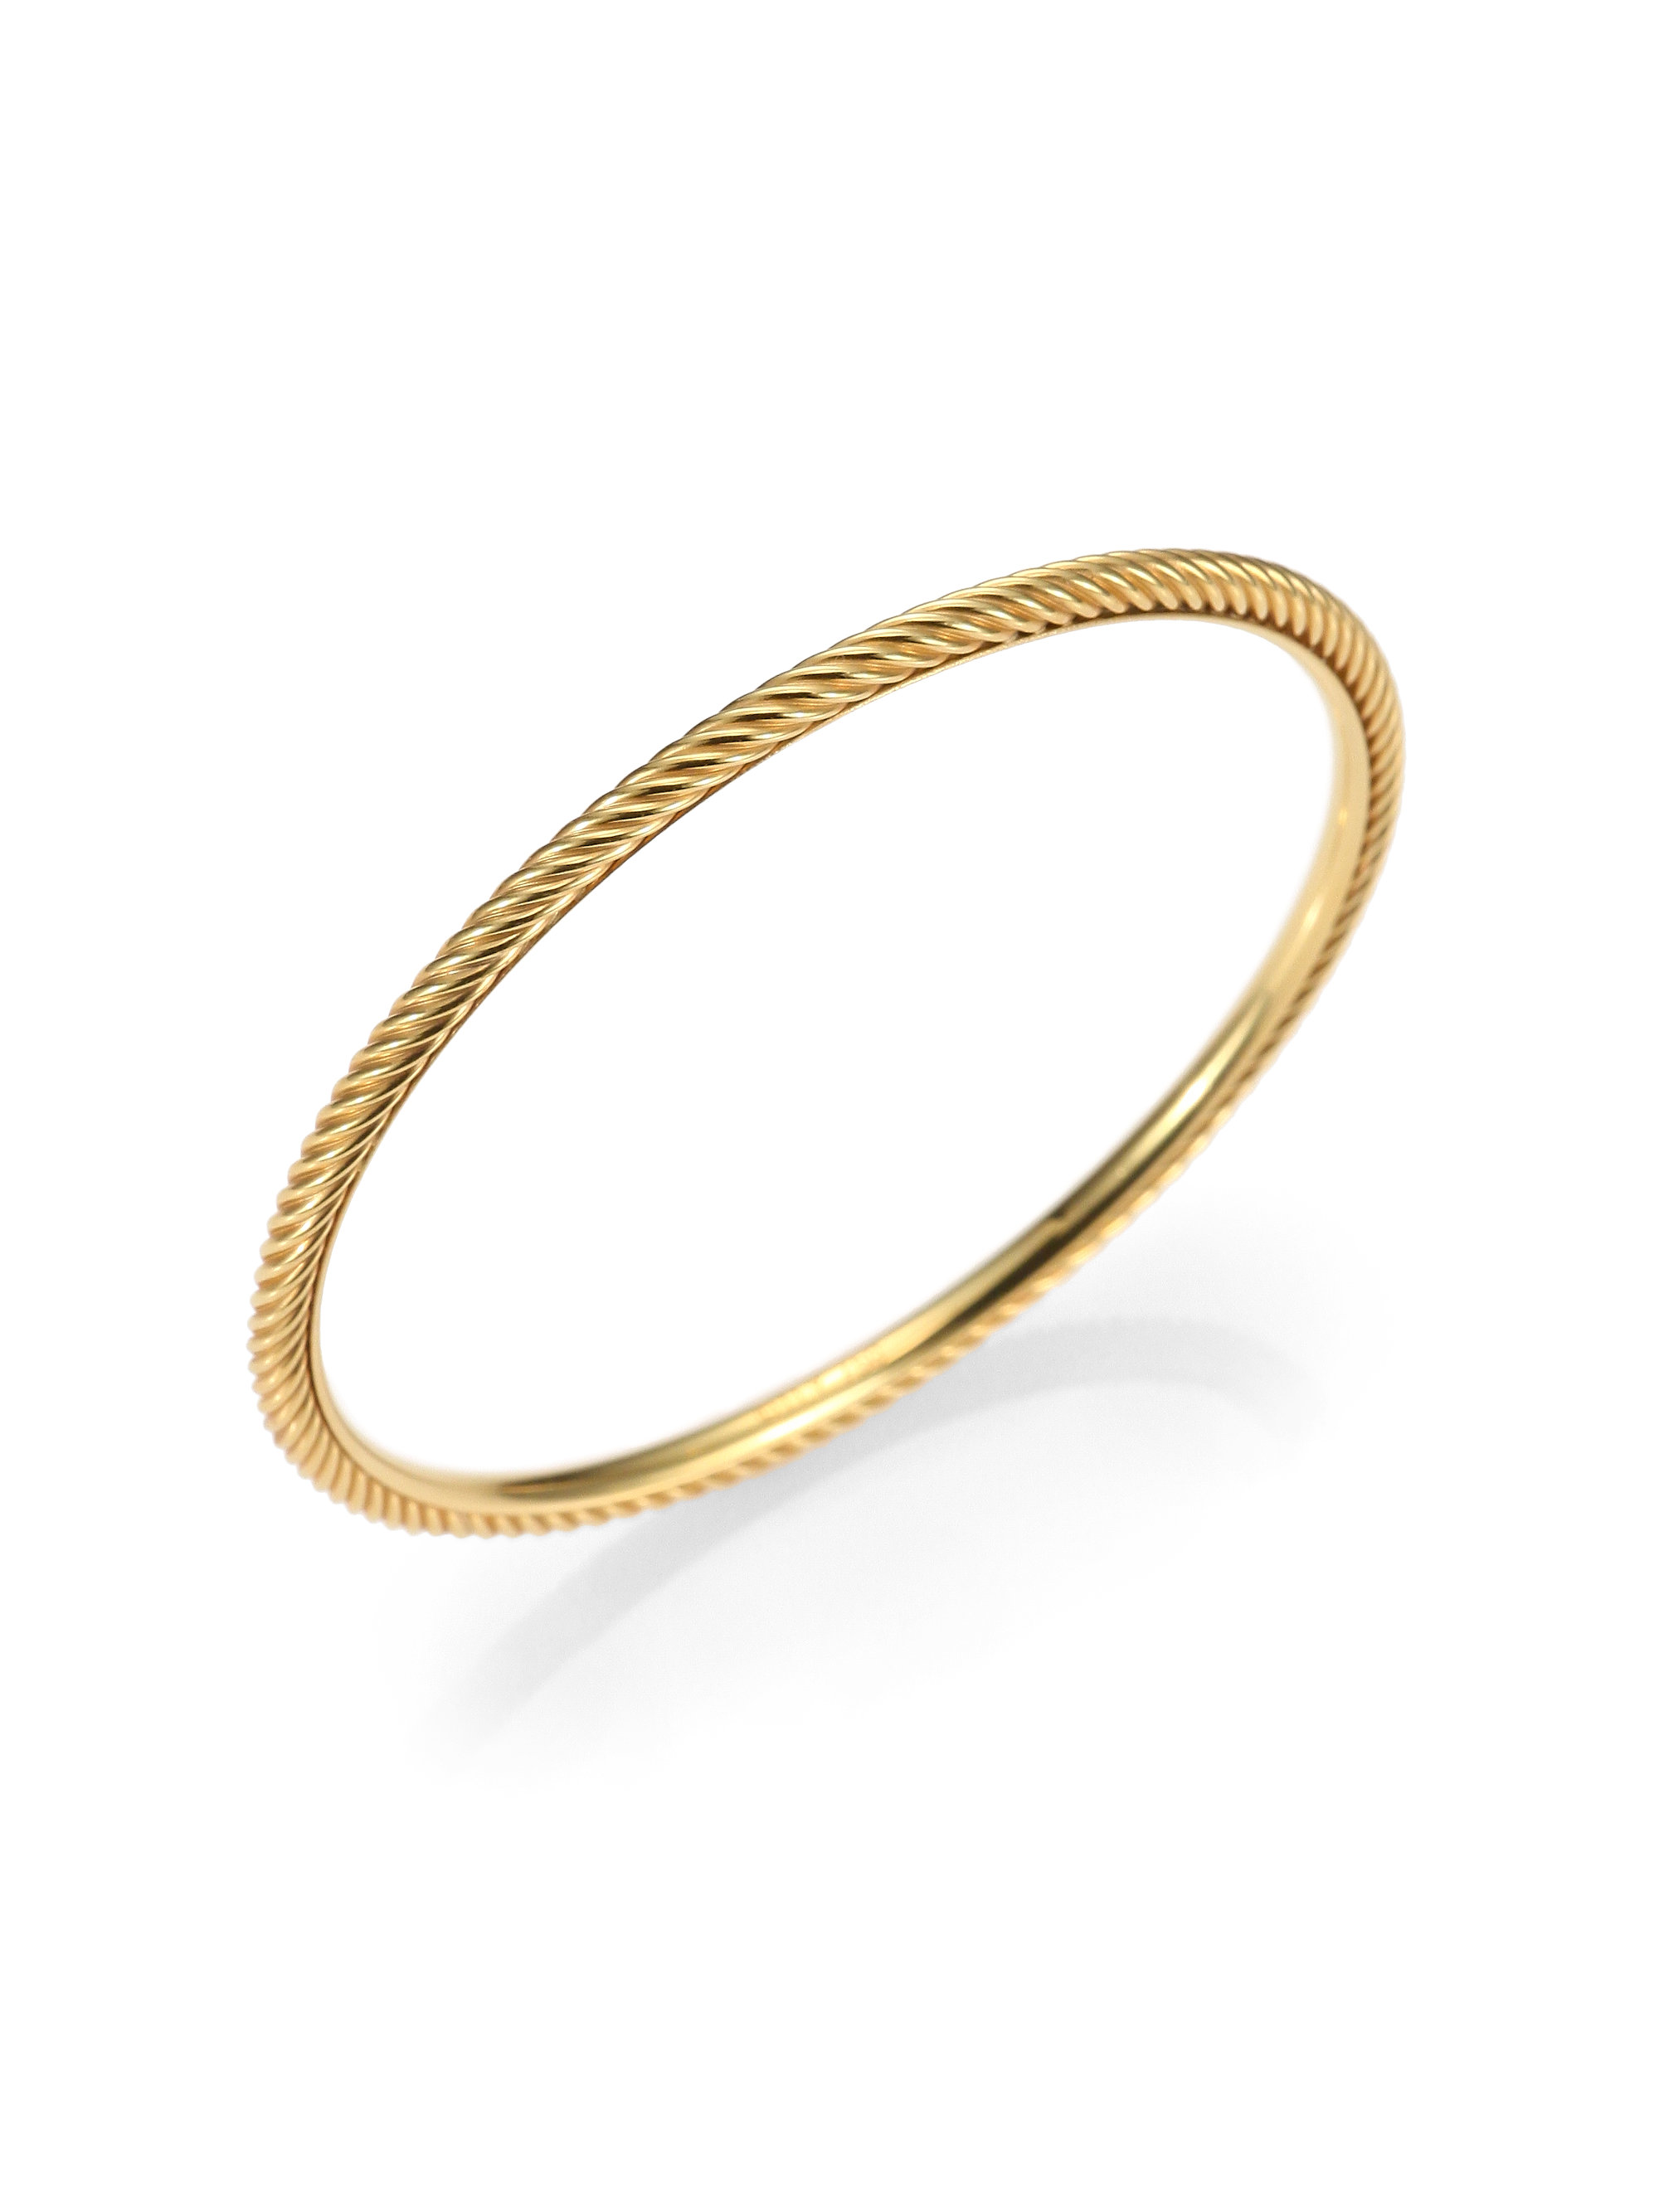 David yurman 18k gold bangle bracelet in gold lyst for David yurman like bracelets